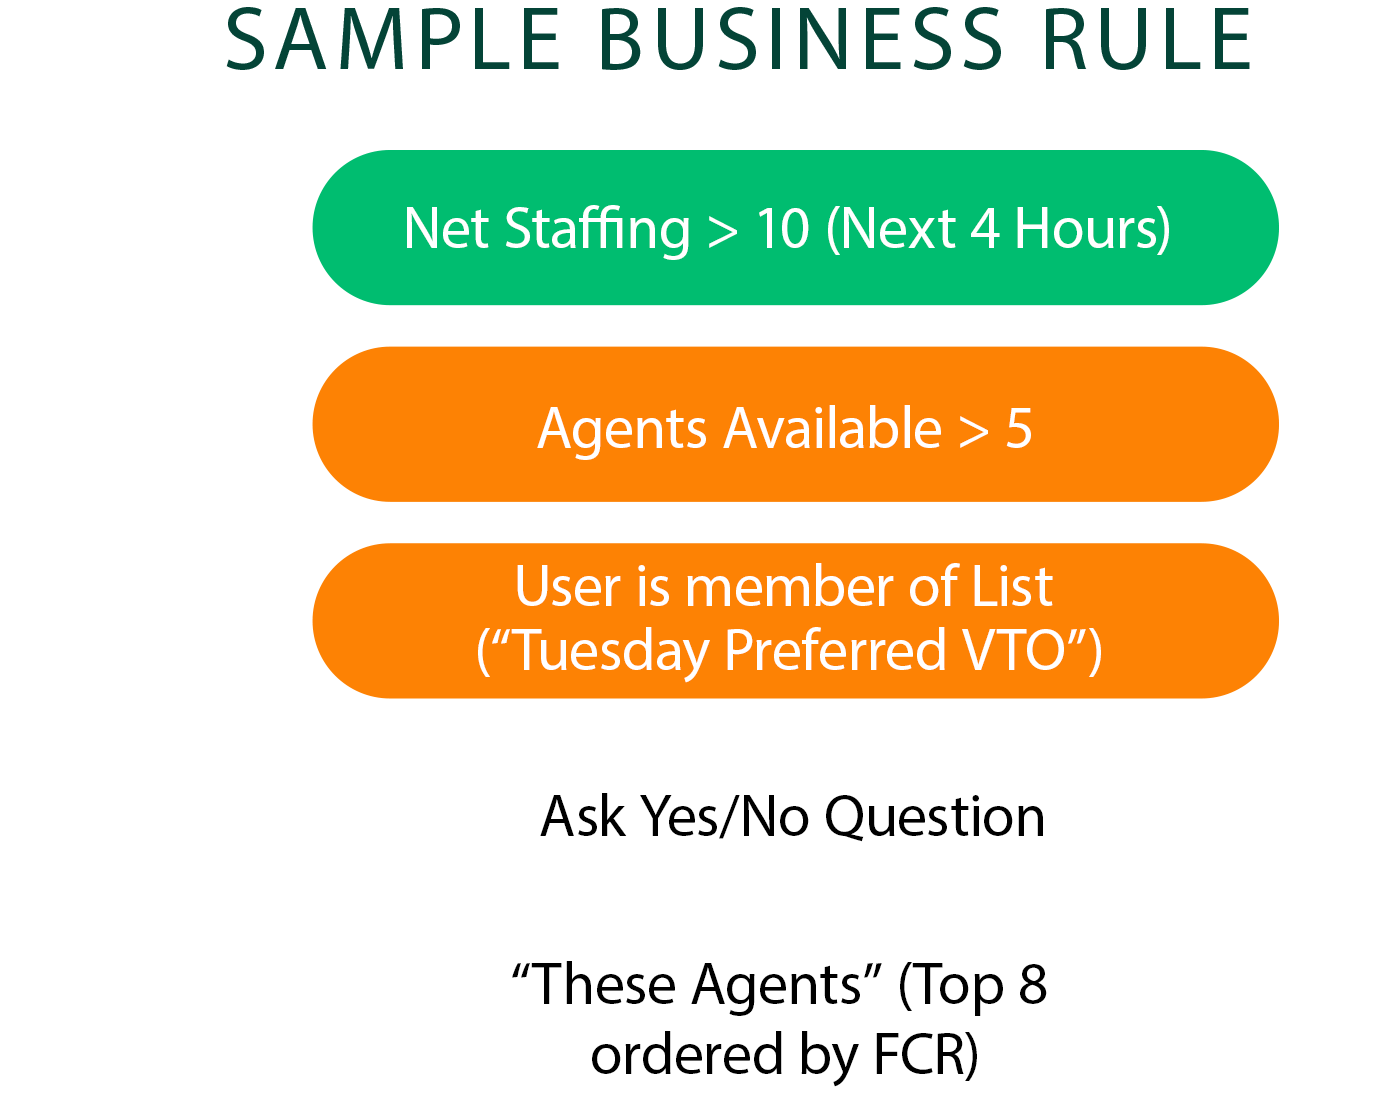 A sample business rule using our products rule engine system.